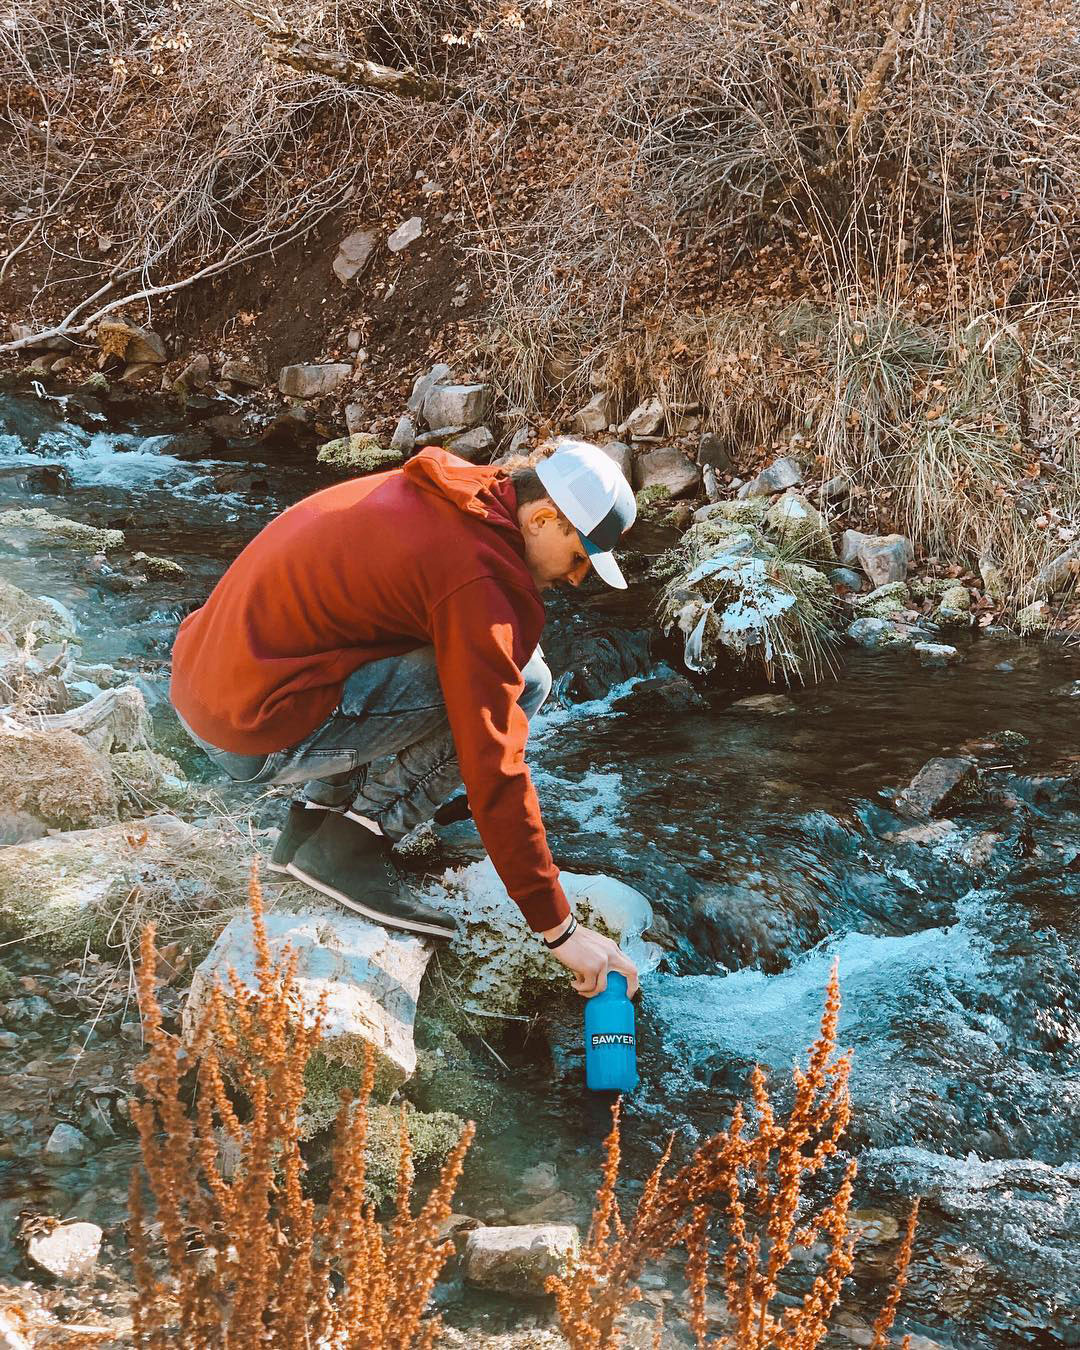 Gentleman Fills his Sawyer Personal Water Filtration Bottle in a Stream